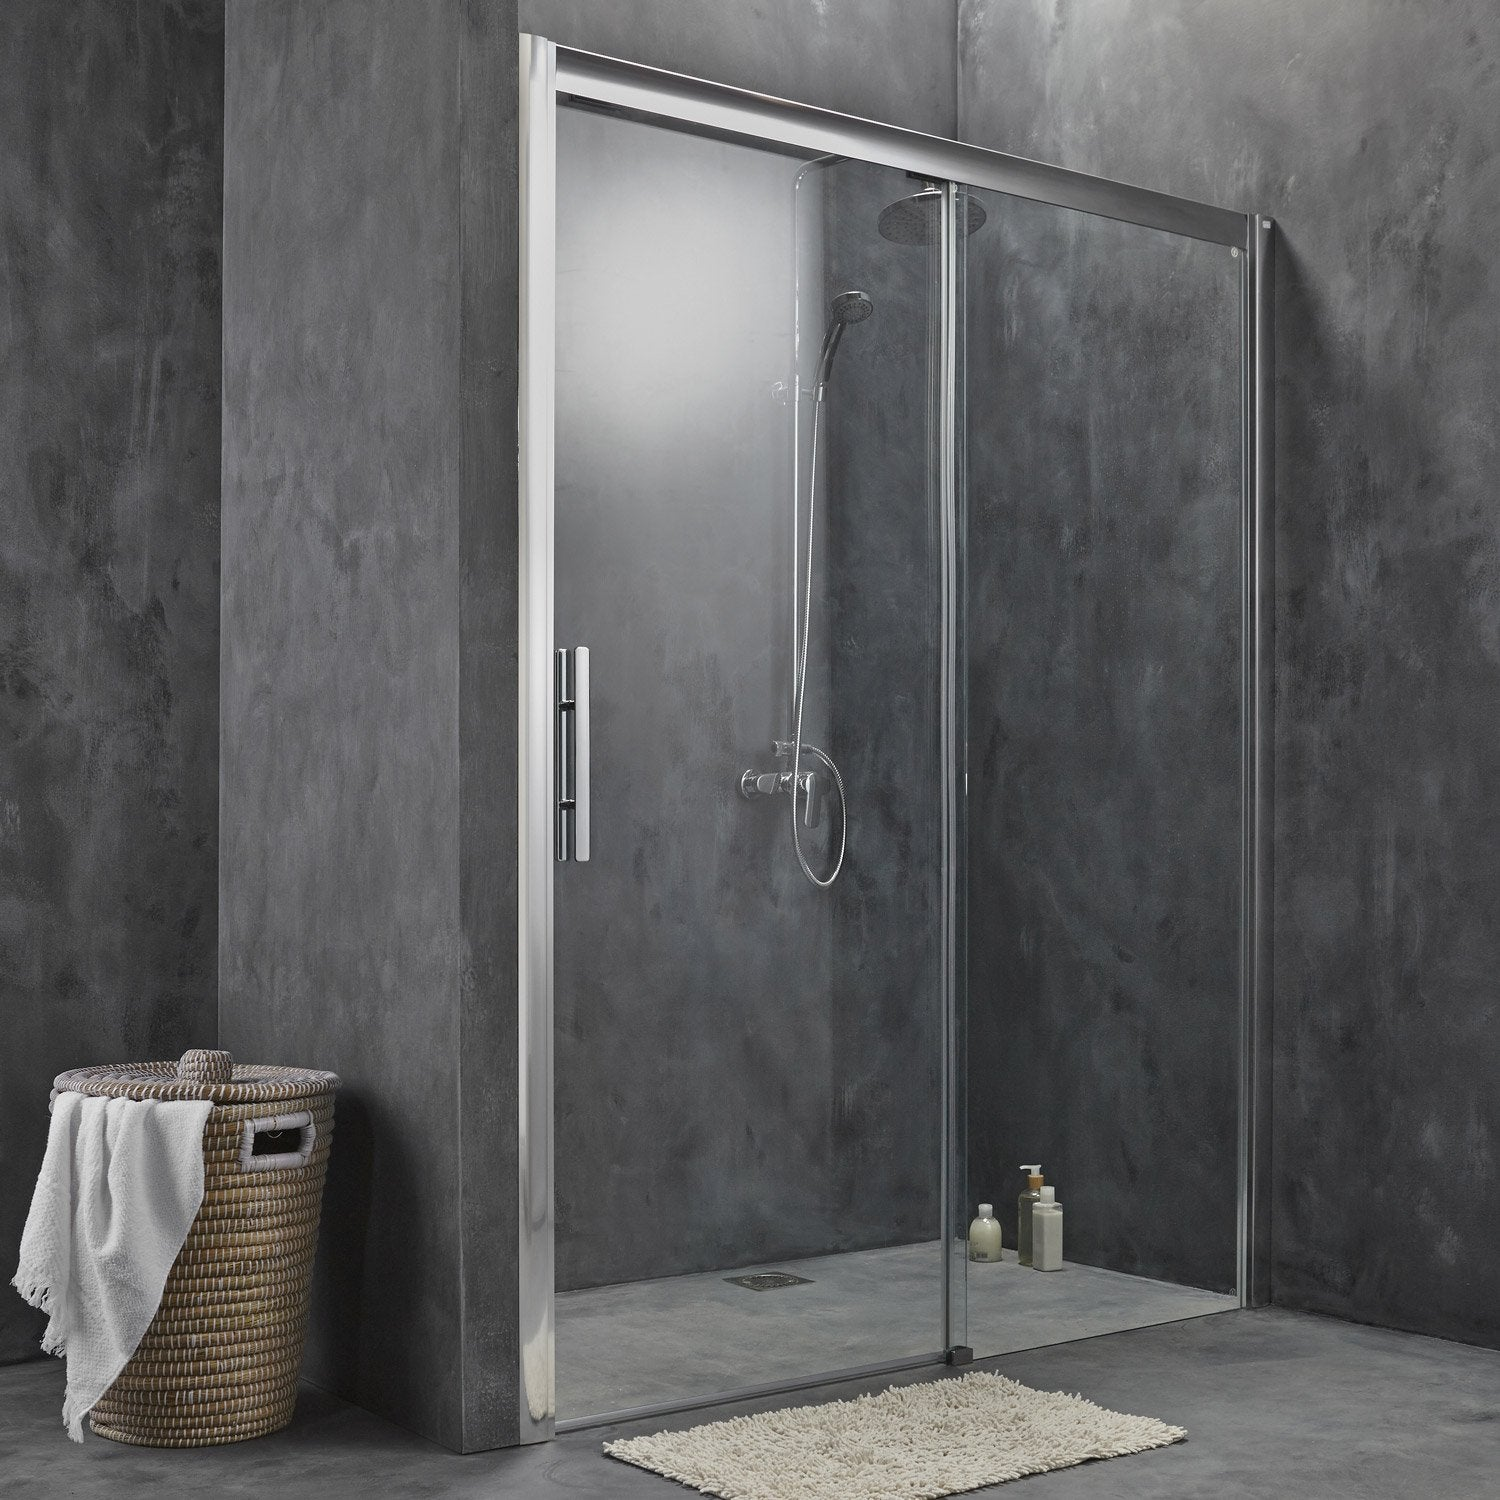 porte de douche coulissante 160 cm transparent adena With porte douche coulissante 160